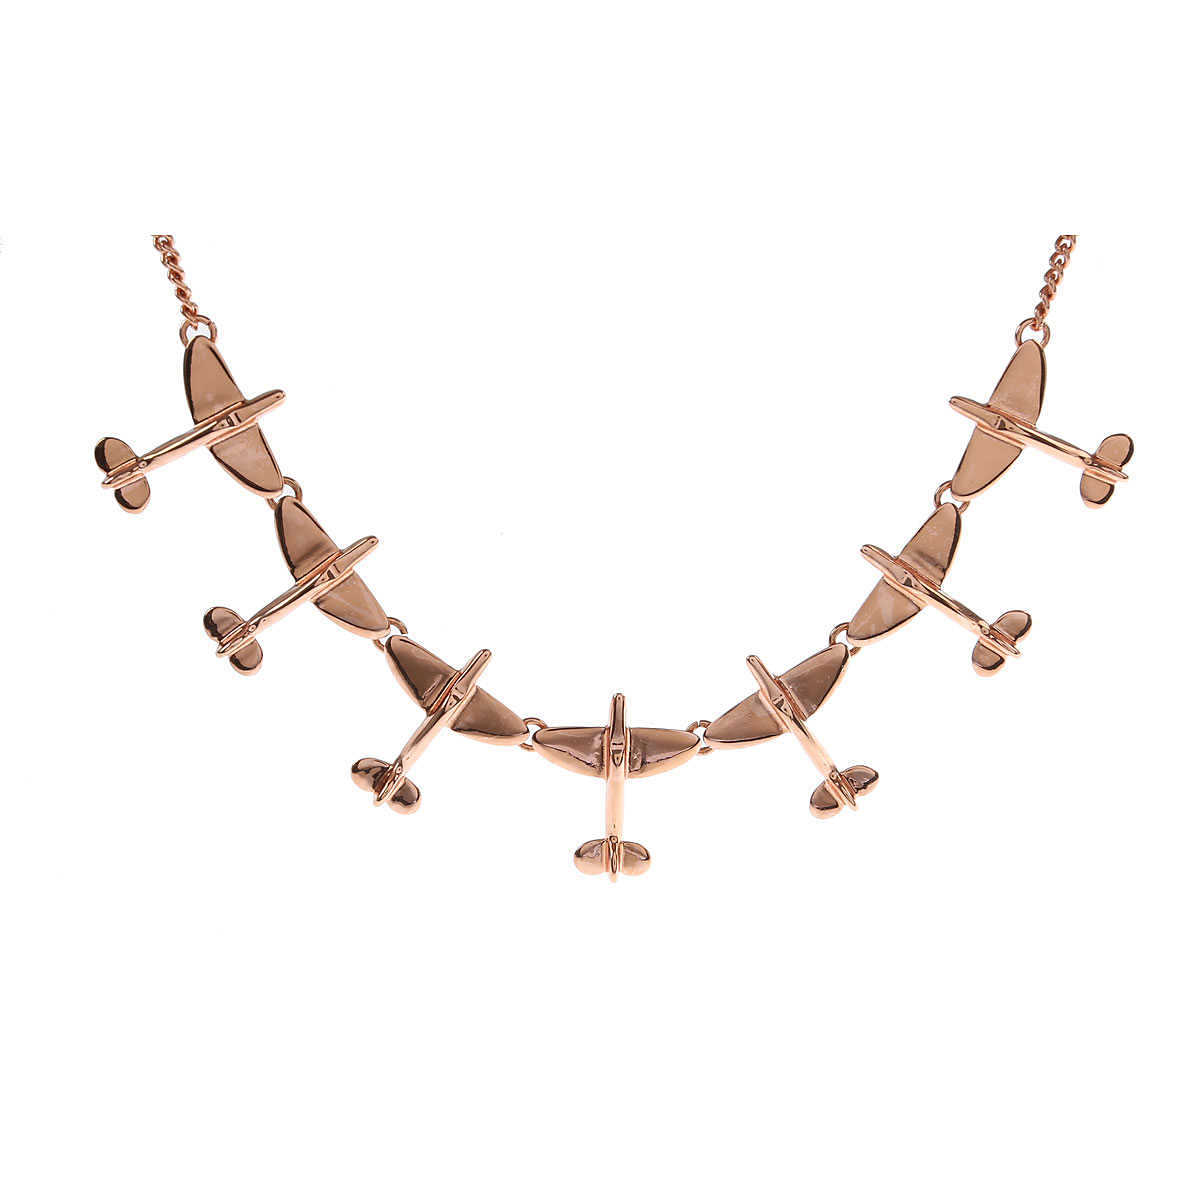 Paul Smith Necklaces On Sale Rose Gold - GOOFASH